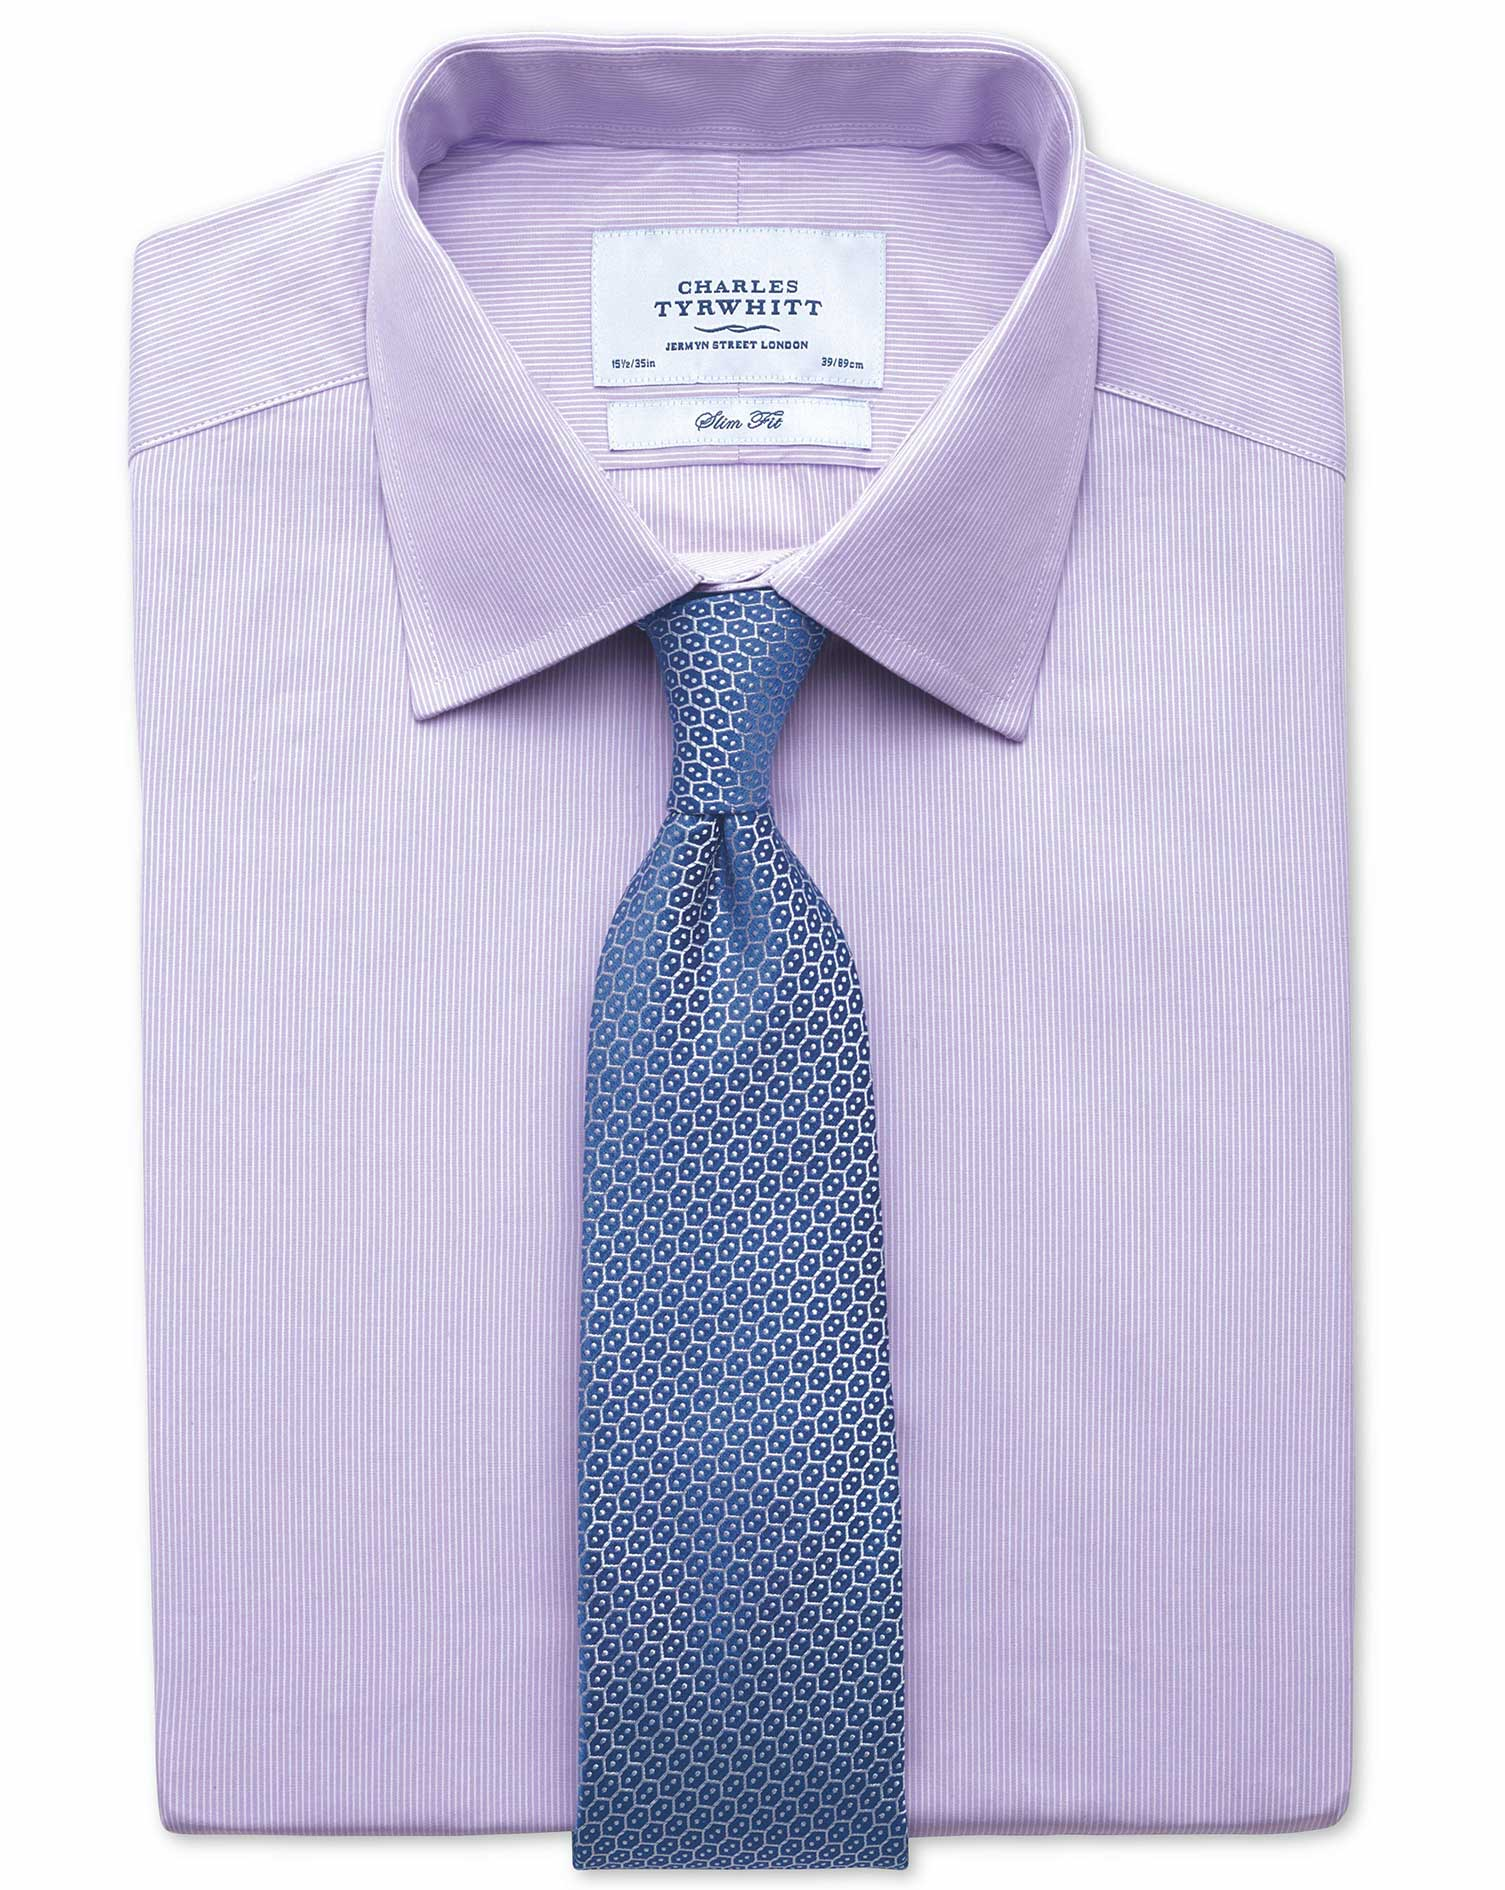 Extra Slim Fit Fine Stripe Lilac Cotton Formal Shirt Double Cuff Size 15/32 by Charles Tyrwhitt